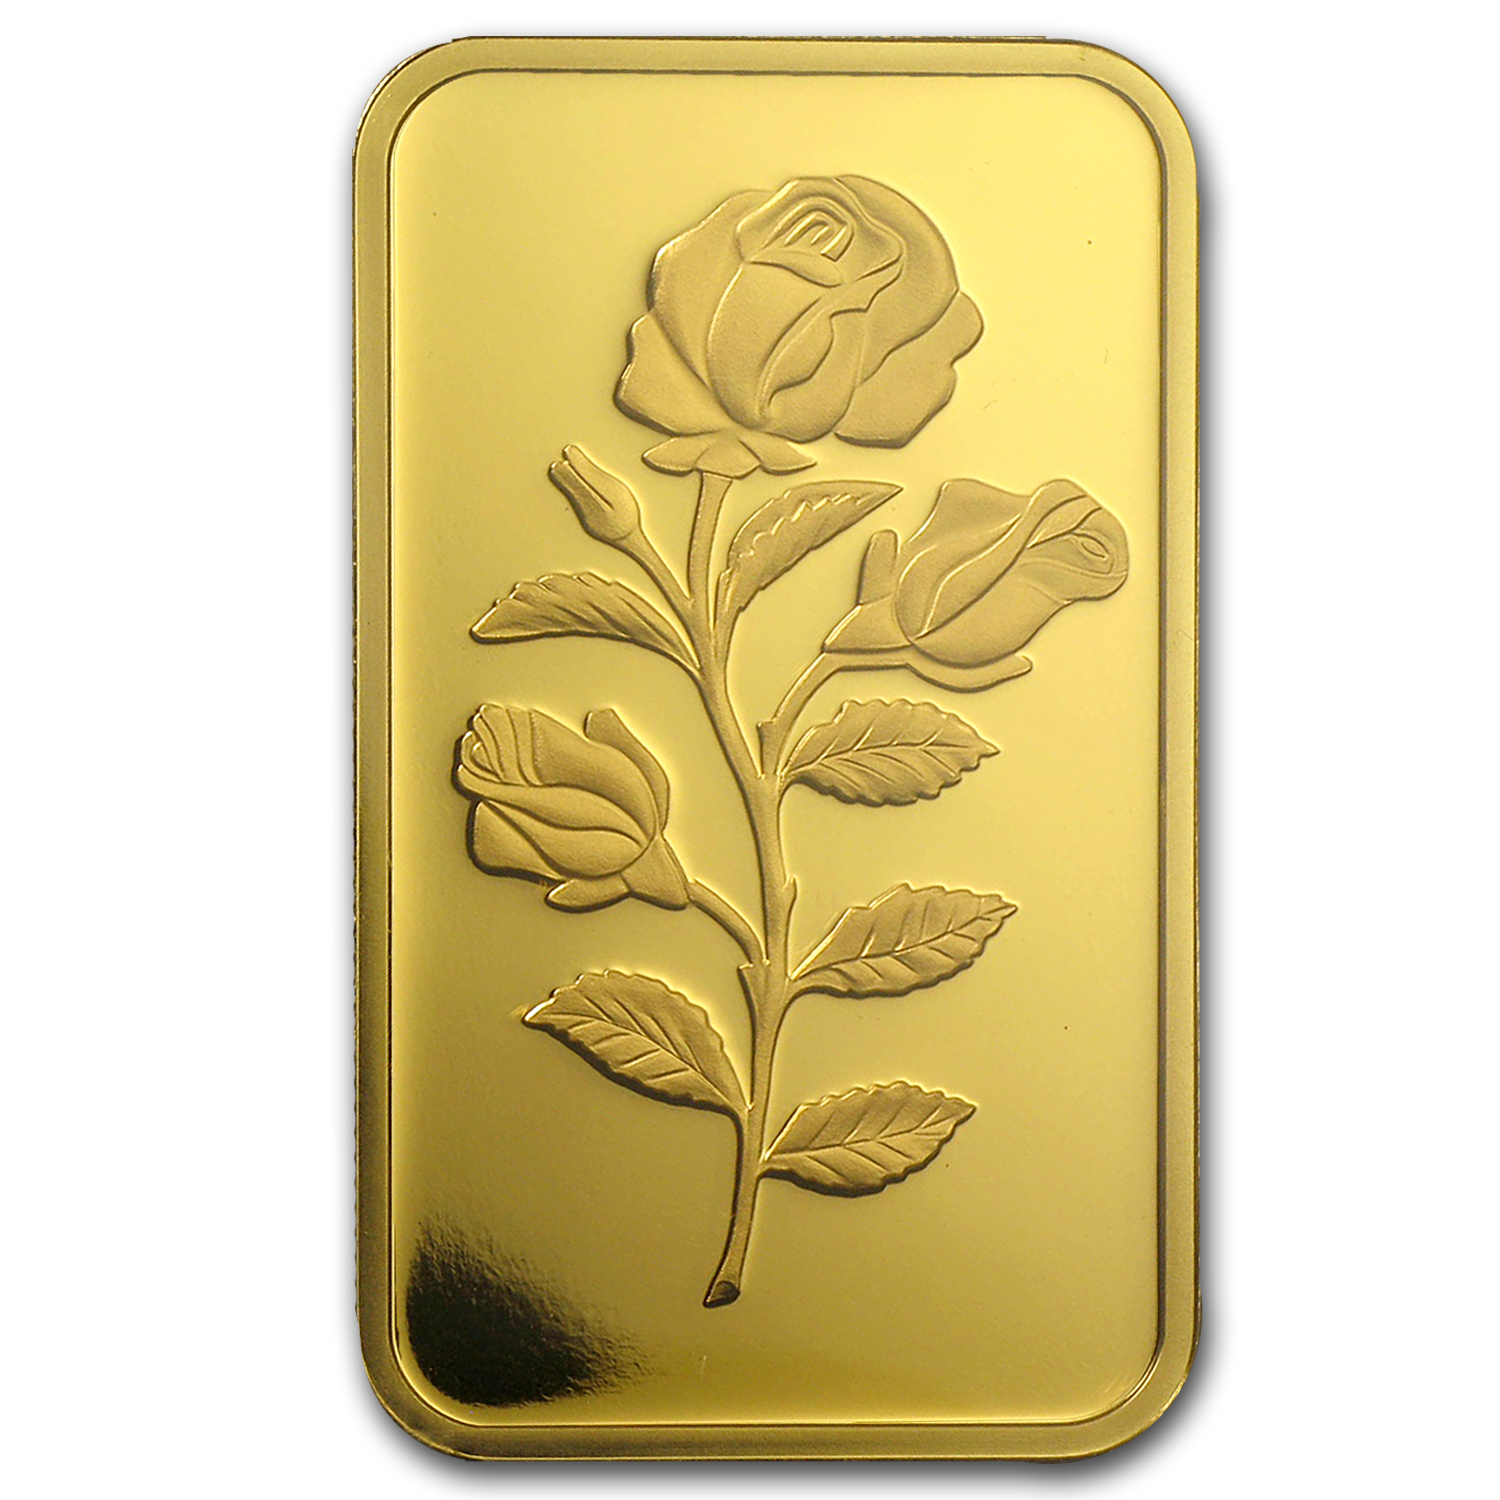 1 oz Gold Bars - Pamp Suisse (Rose, w/o Assay)